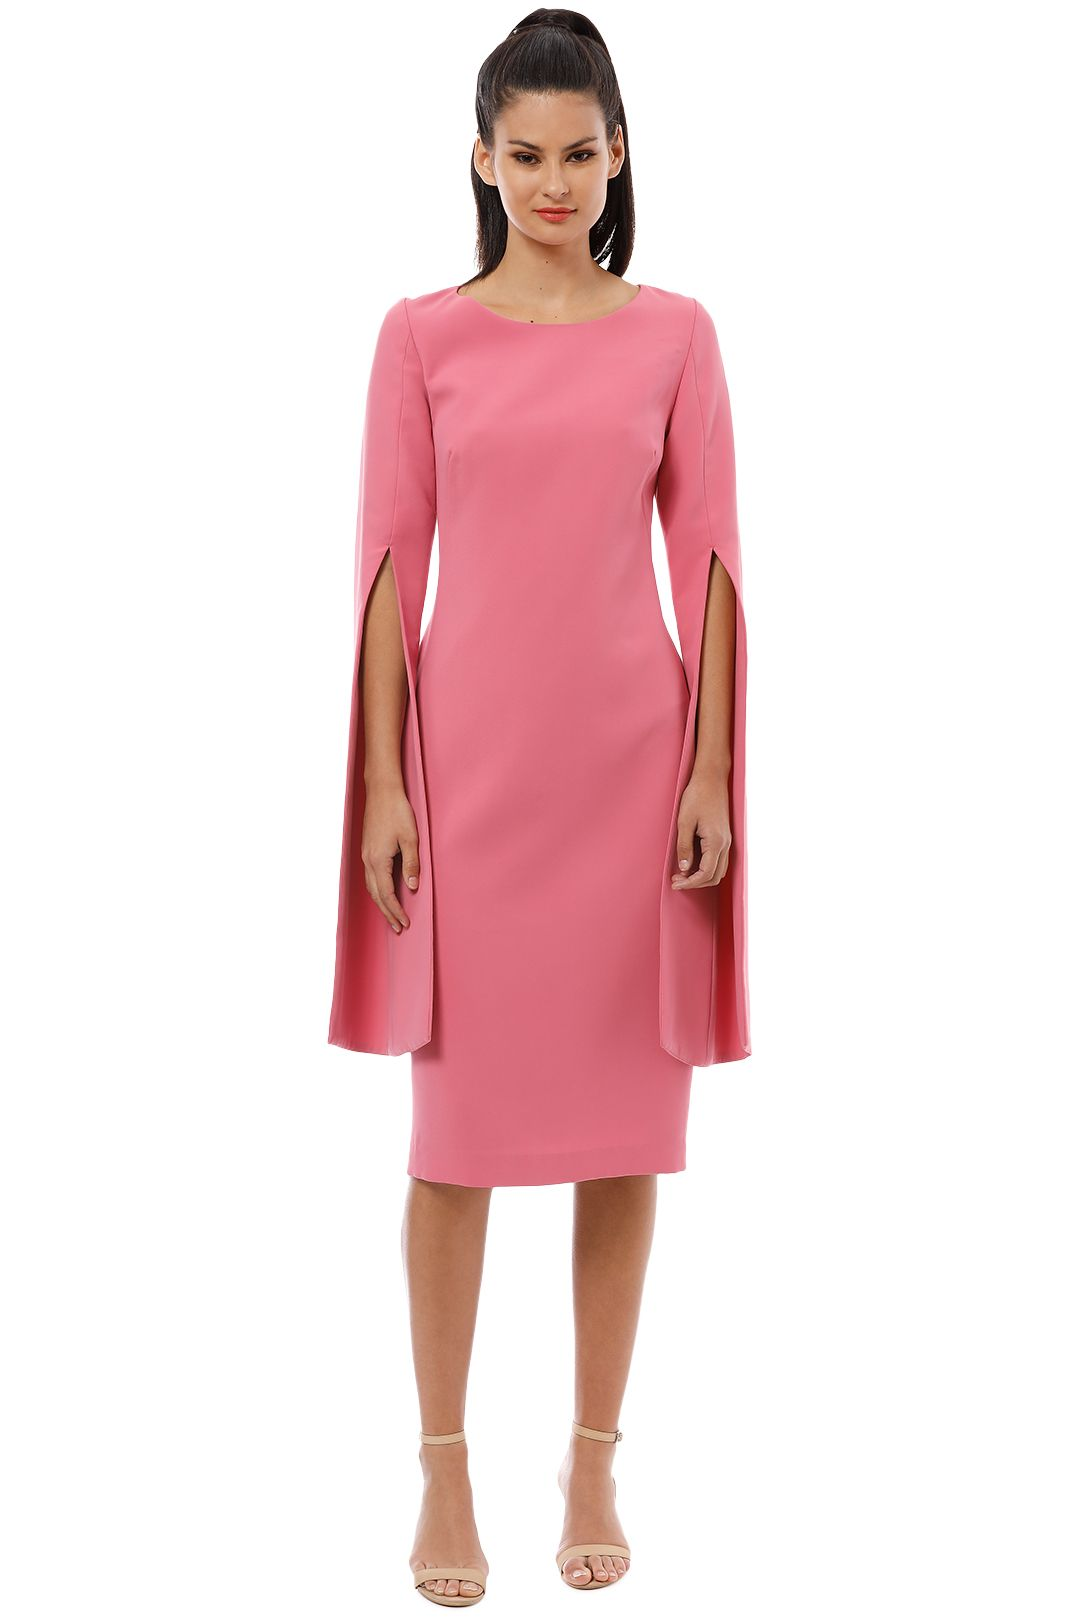 Trelise Cooper - Up Your Sleeve Dress - Pink - Front